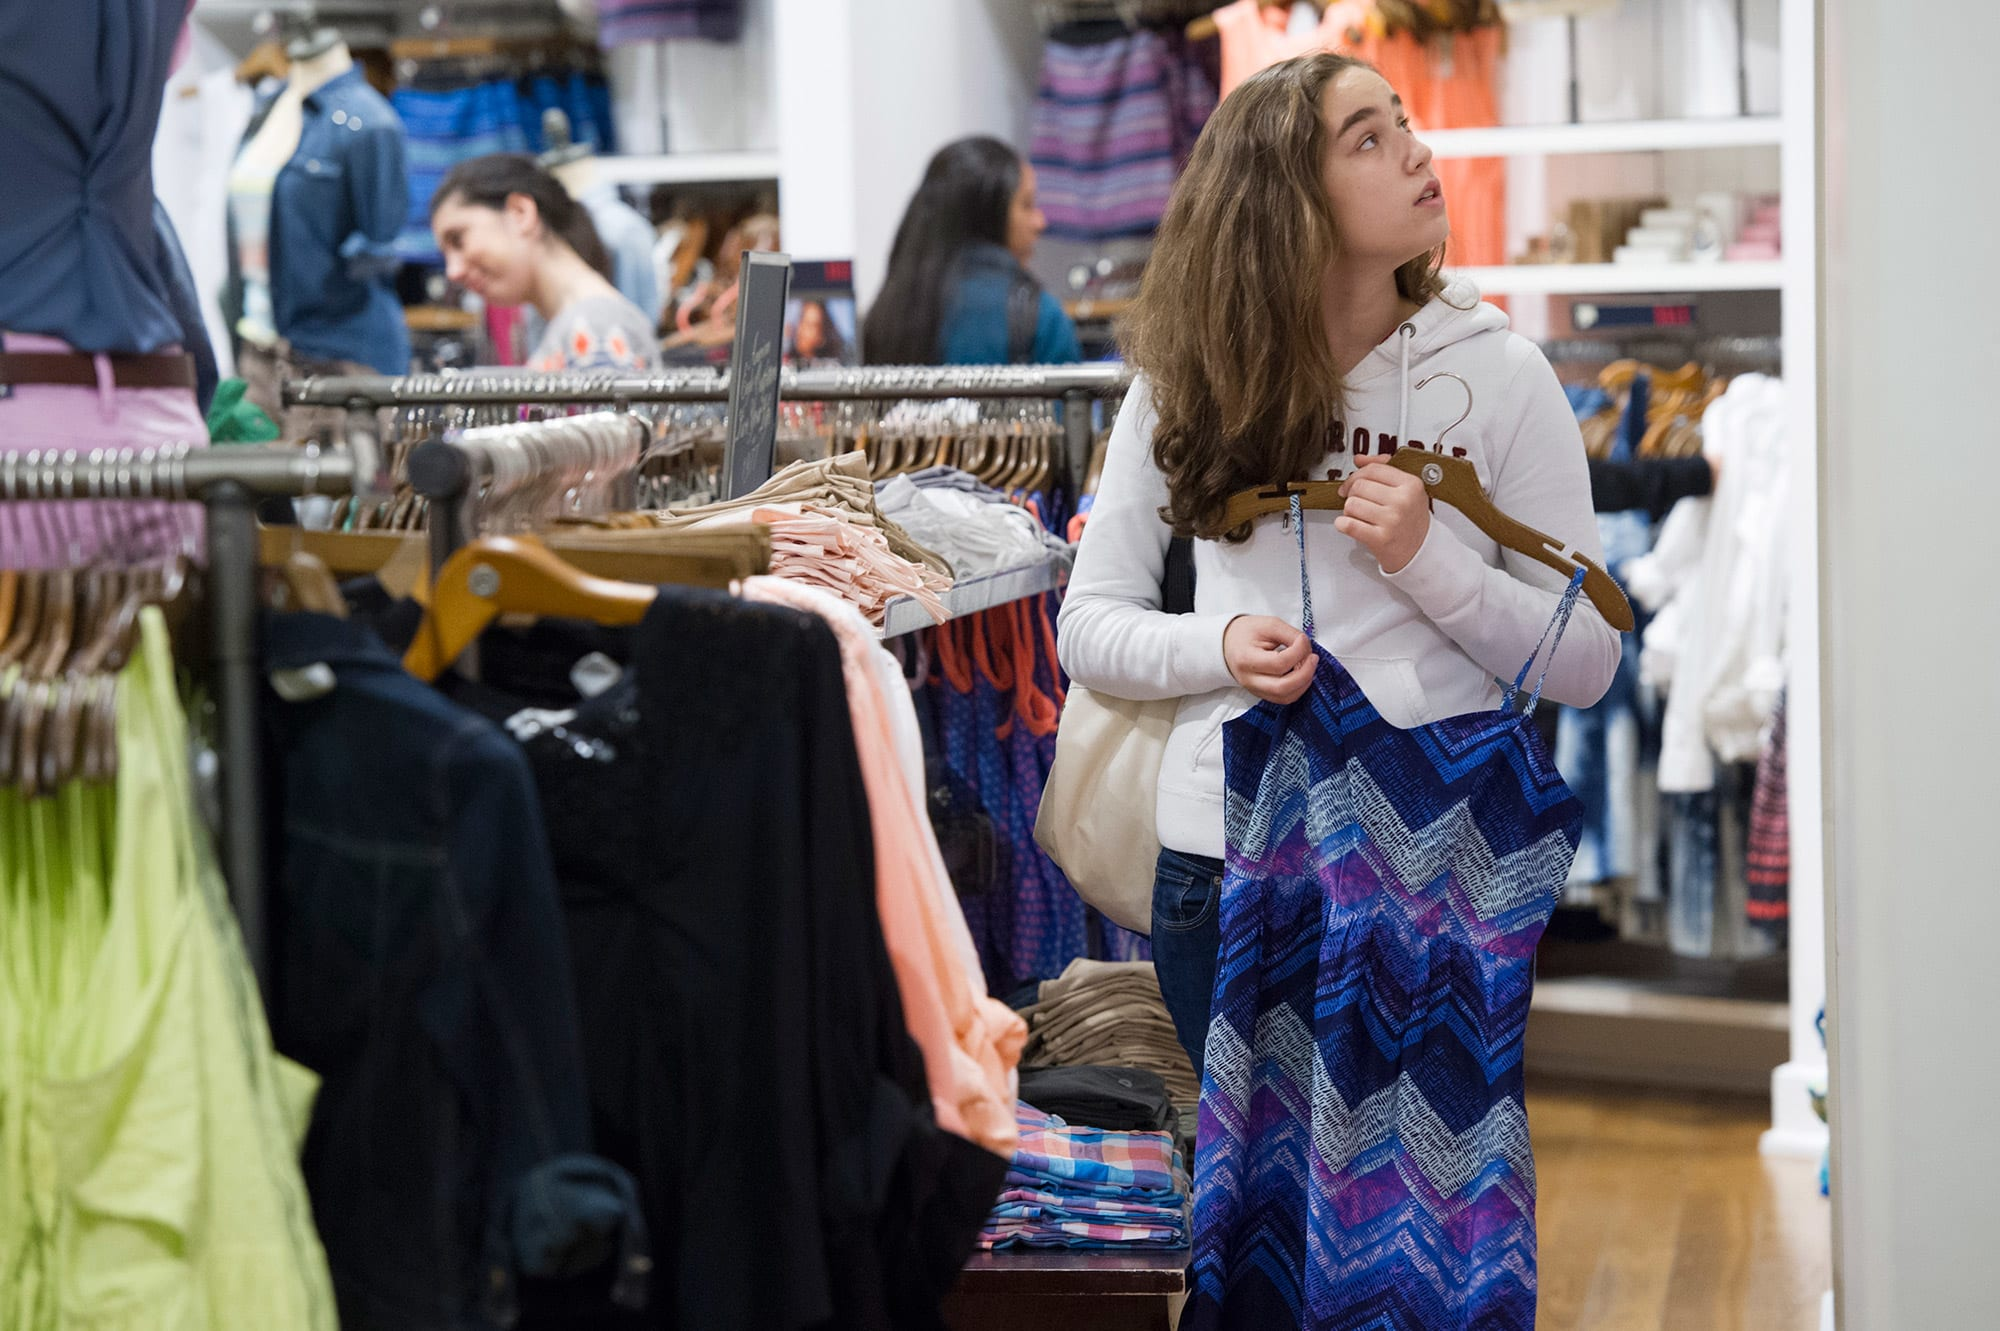 Gen Z shopping habits can fuel a brick-and-mortar resurgence, report says